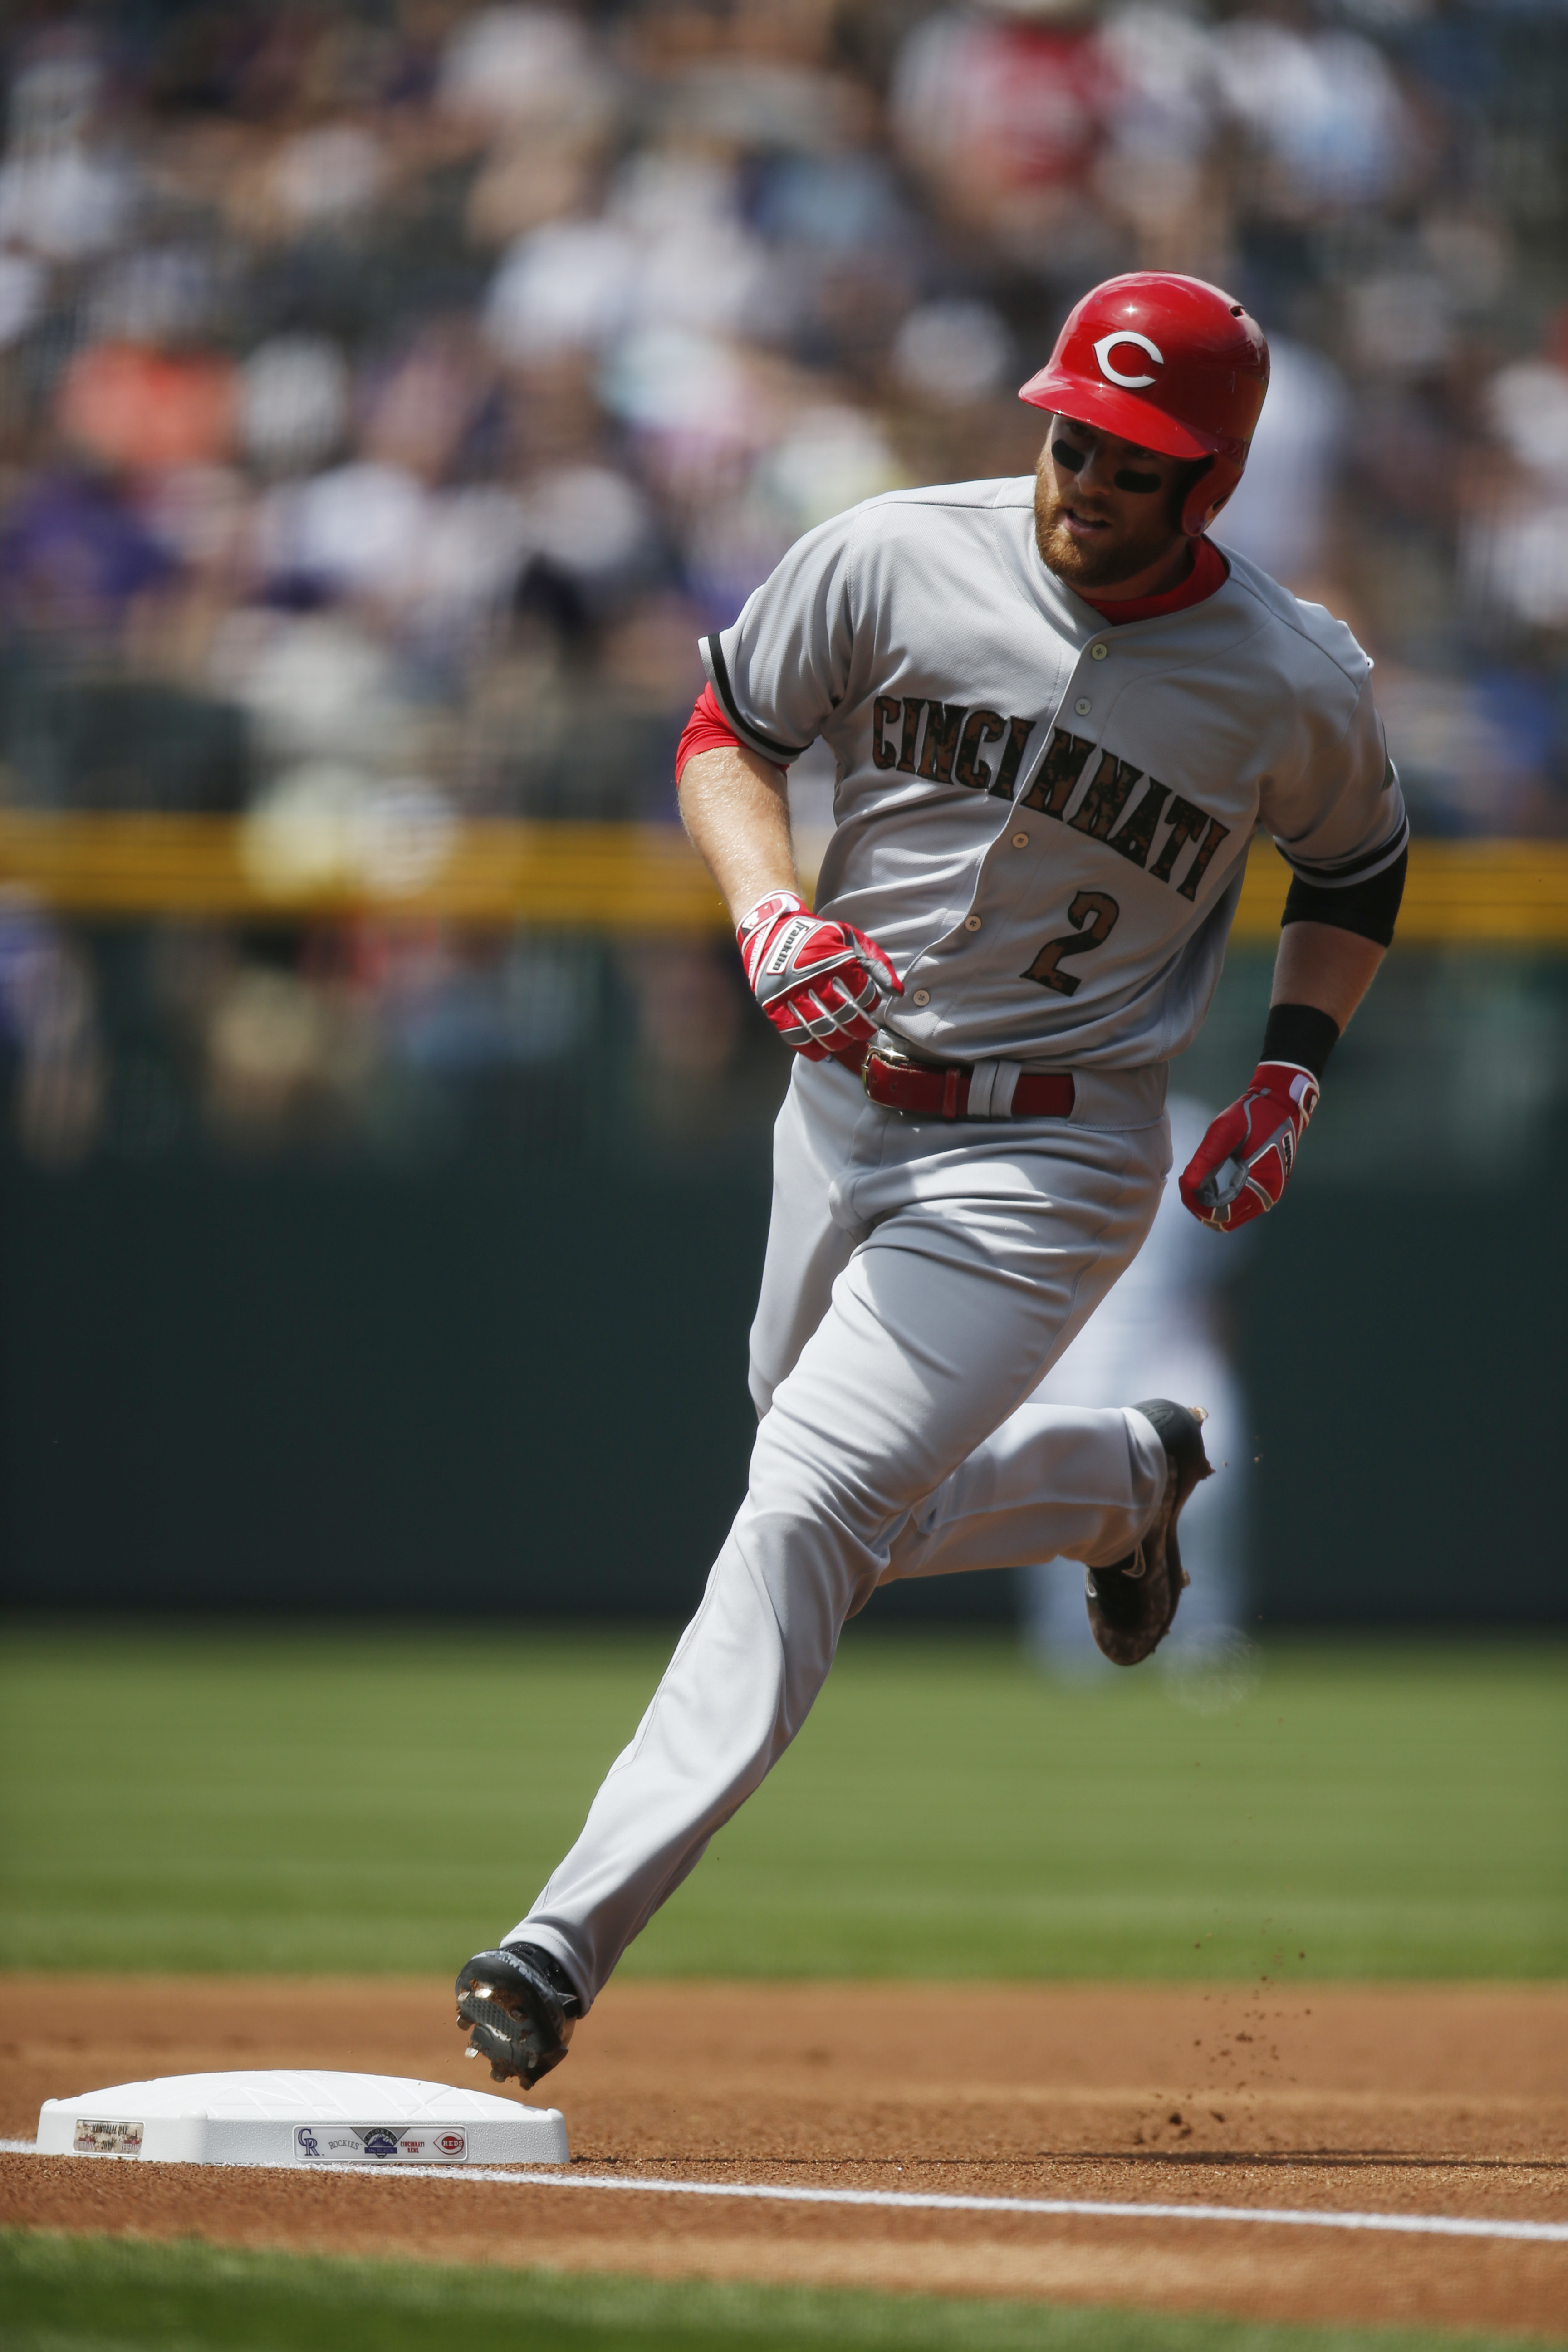 Cincinnati Reds' Zack Cozart circles the bases after hitting a solo home run on the first pitch from Colorado Rockies starting pitcher Chad Bettis in the first inning of a baseball game Monday, May 30, 2016, in Denver. (AP Photo/David Zalubowski)